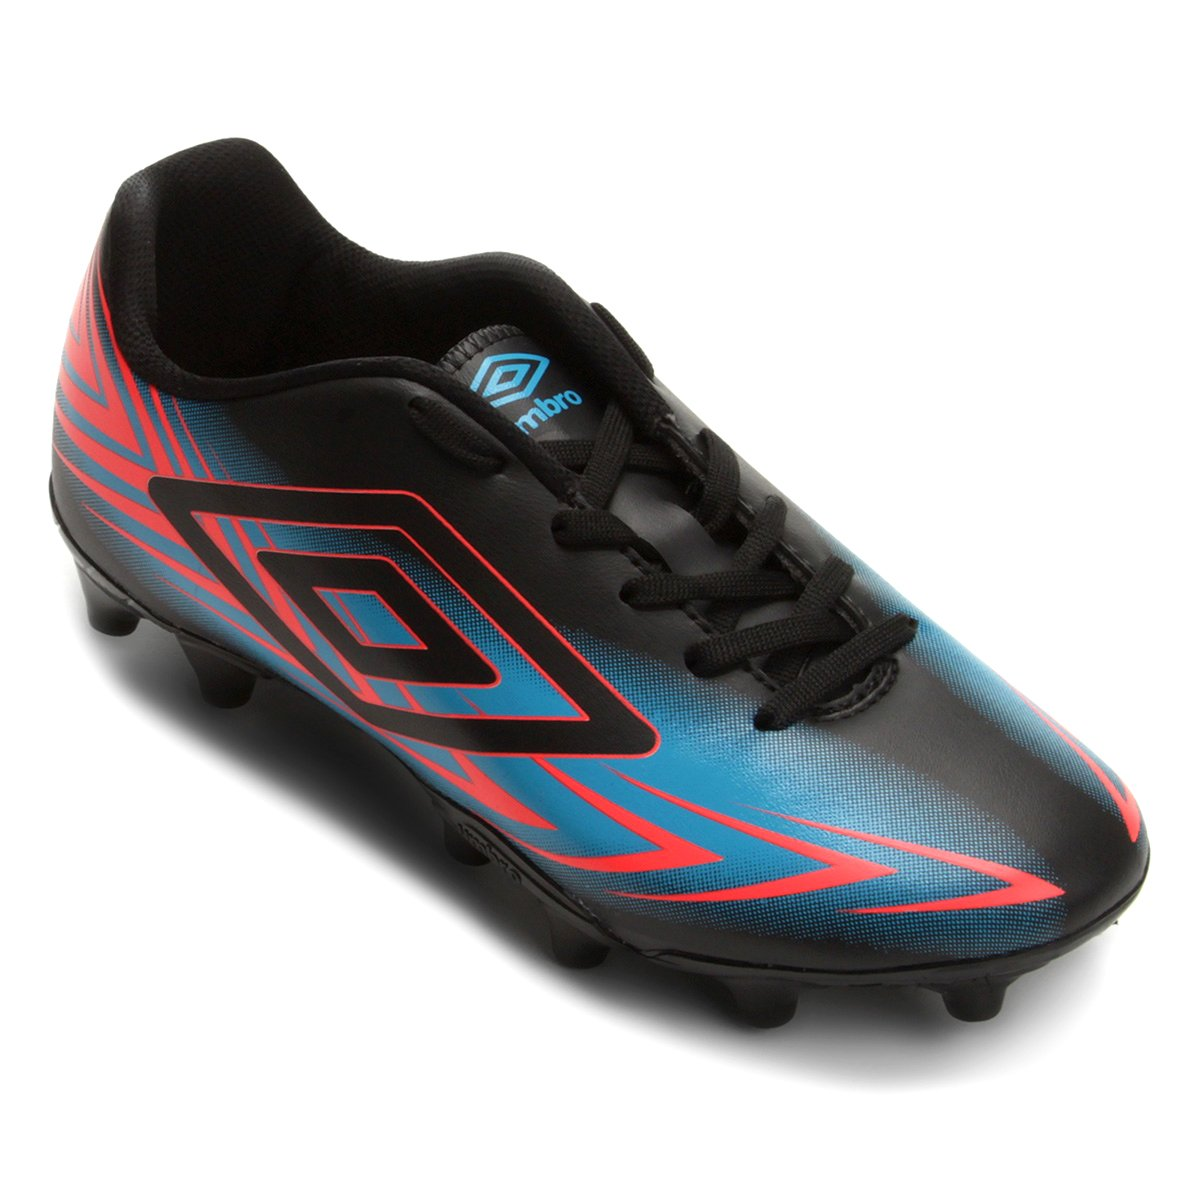 37%OFF Chuteira Campo Umbro Speed III 31fafdab7ac26